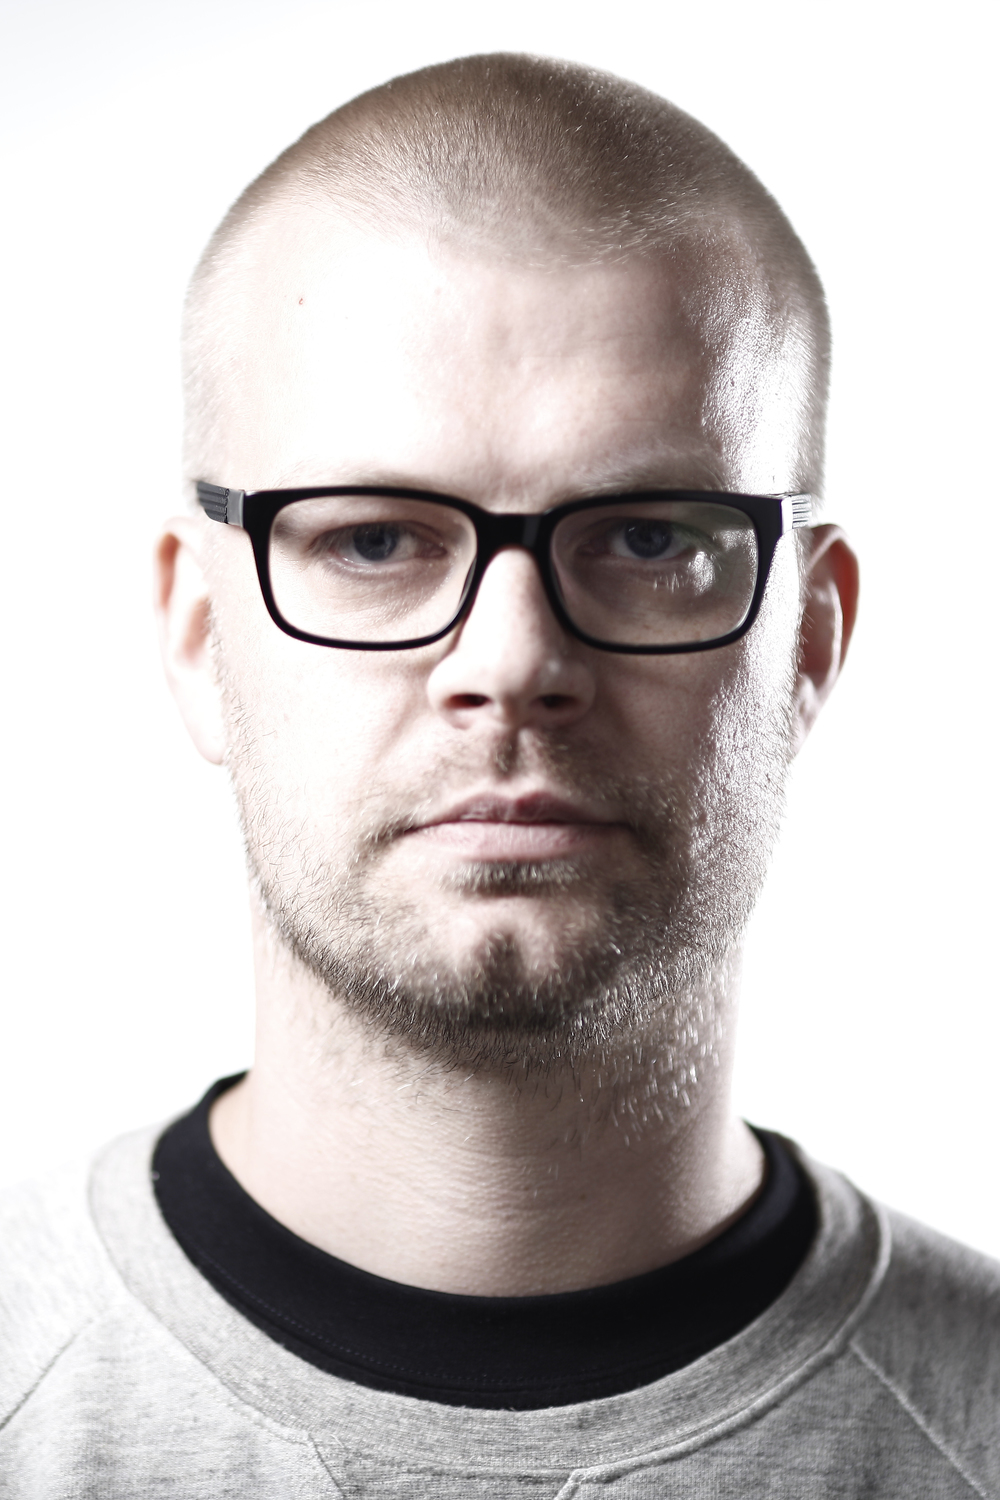 Magnus Lekberg   Magnus is our creative director and is responsible for the project's overall creative process. He is a media producer and filmmaker and has worked with both small Swedish companies and international corporations, in various film projects.